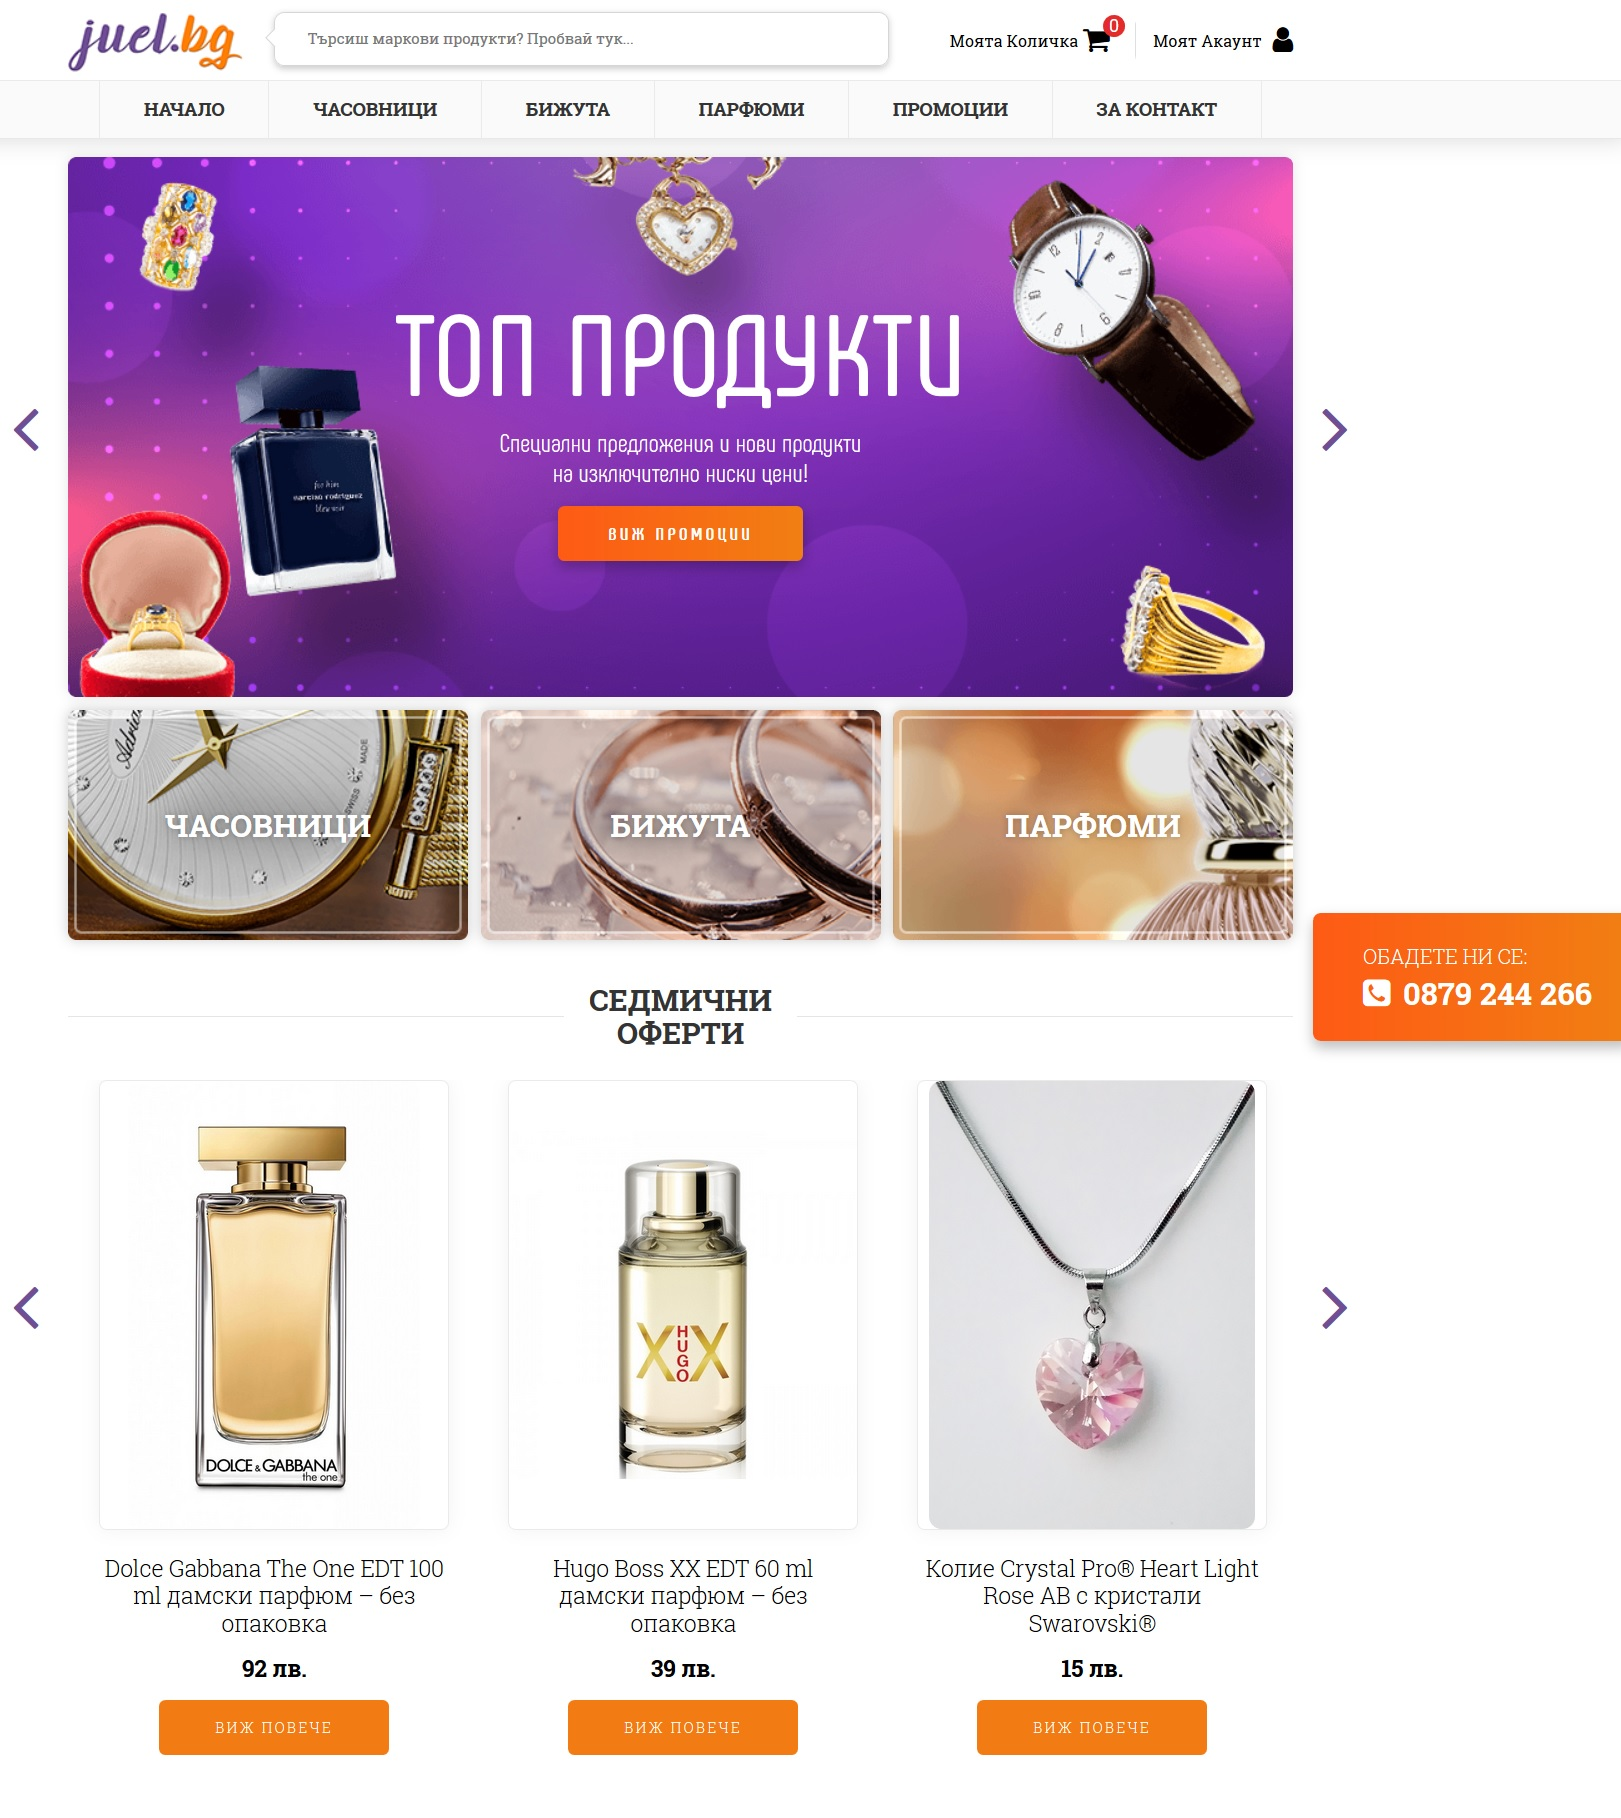 Juel.bg – Online shop for fragrances, watches and jewellery